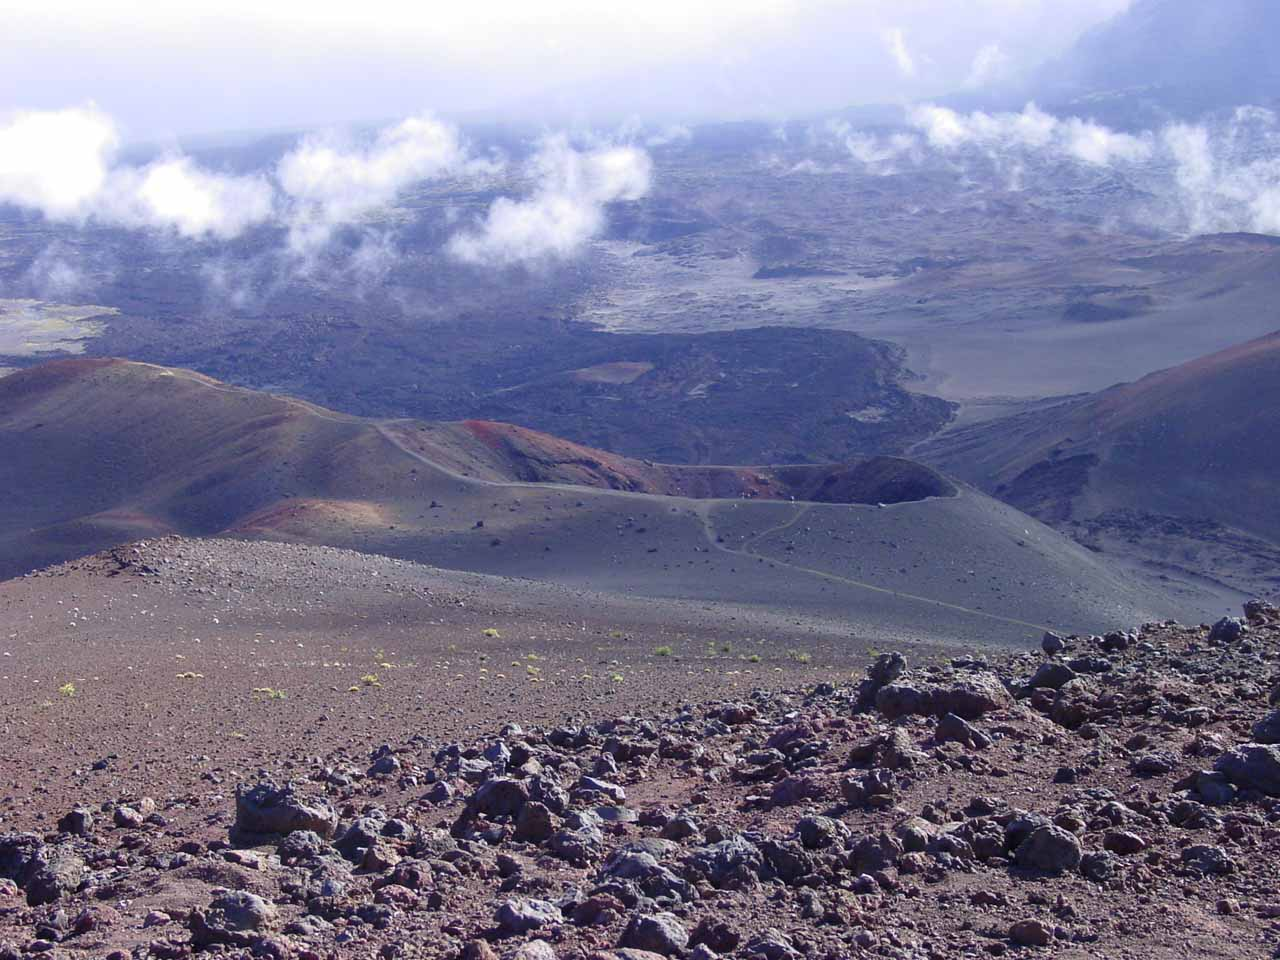 The cratered moonscape of the Haleakala Summit on Maui is the scene of the famous sunrise as well as some otherworldly hiking